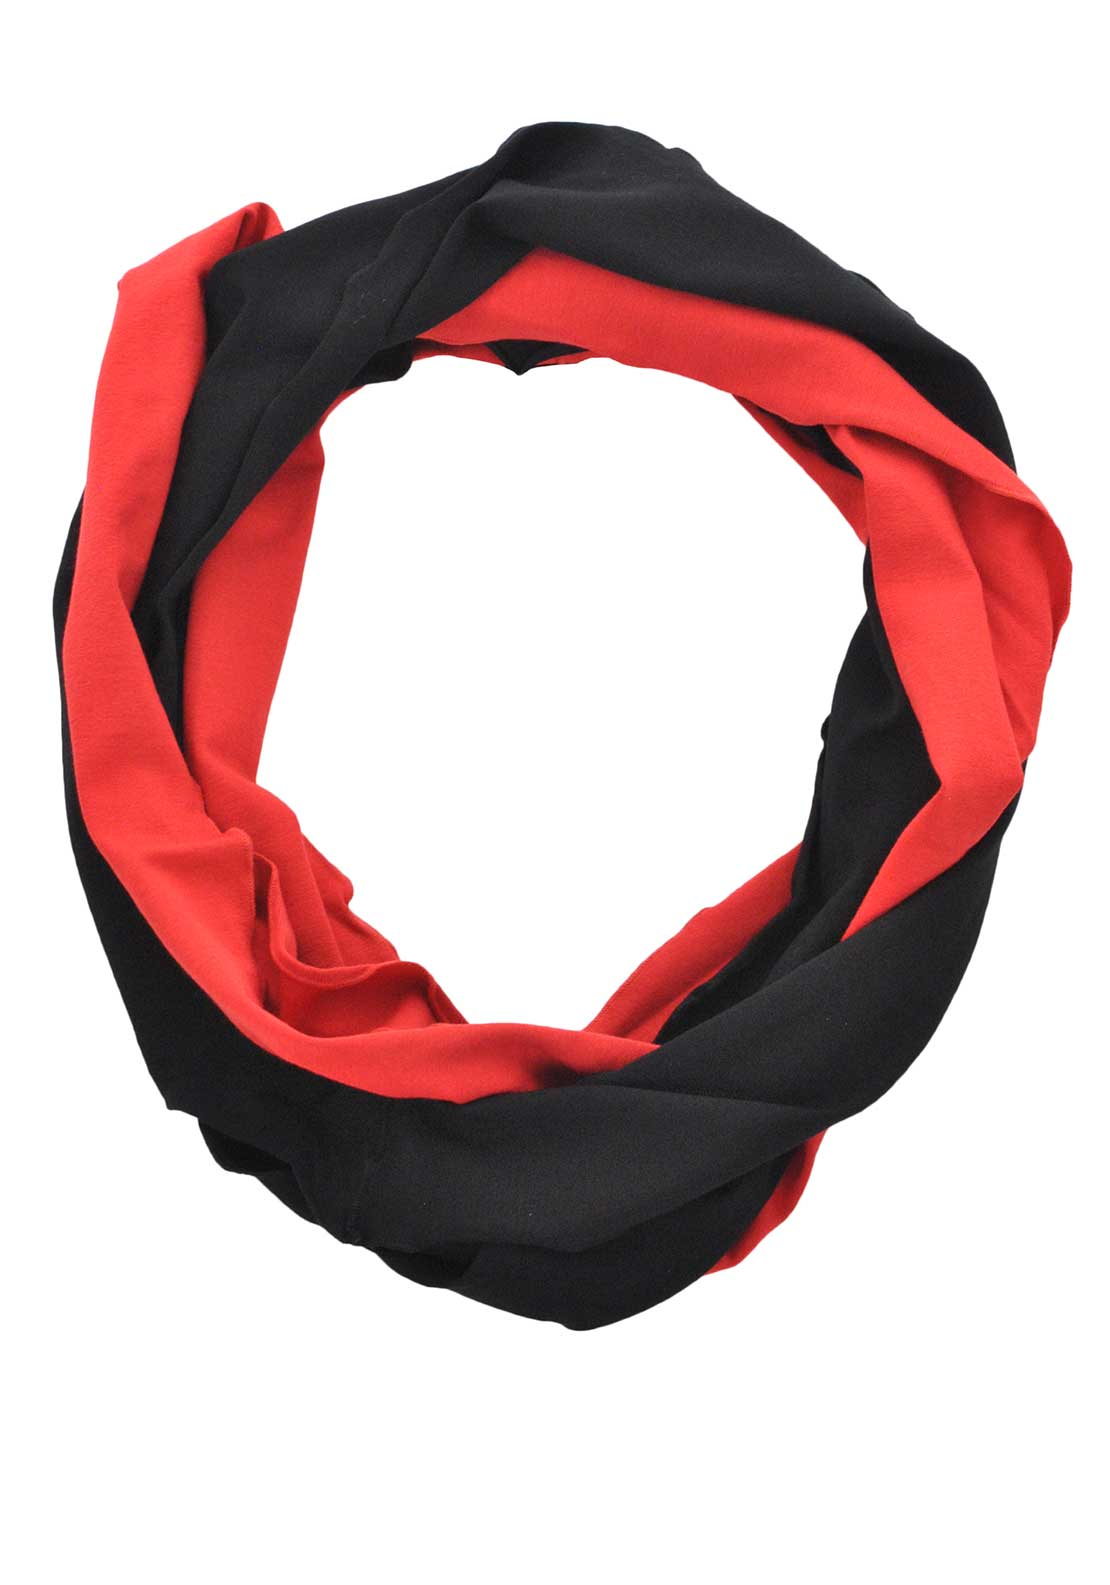 Doris Streich Jersey Snood, Black and Red